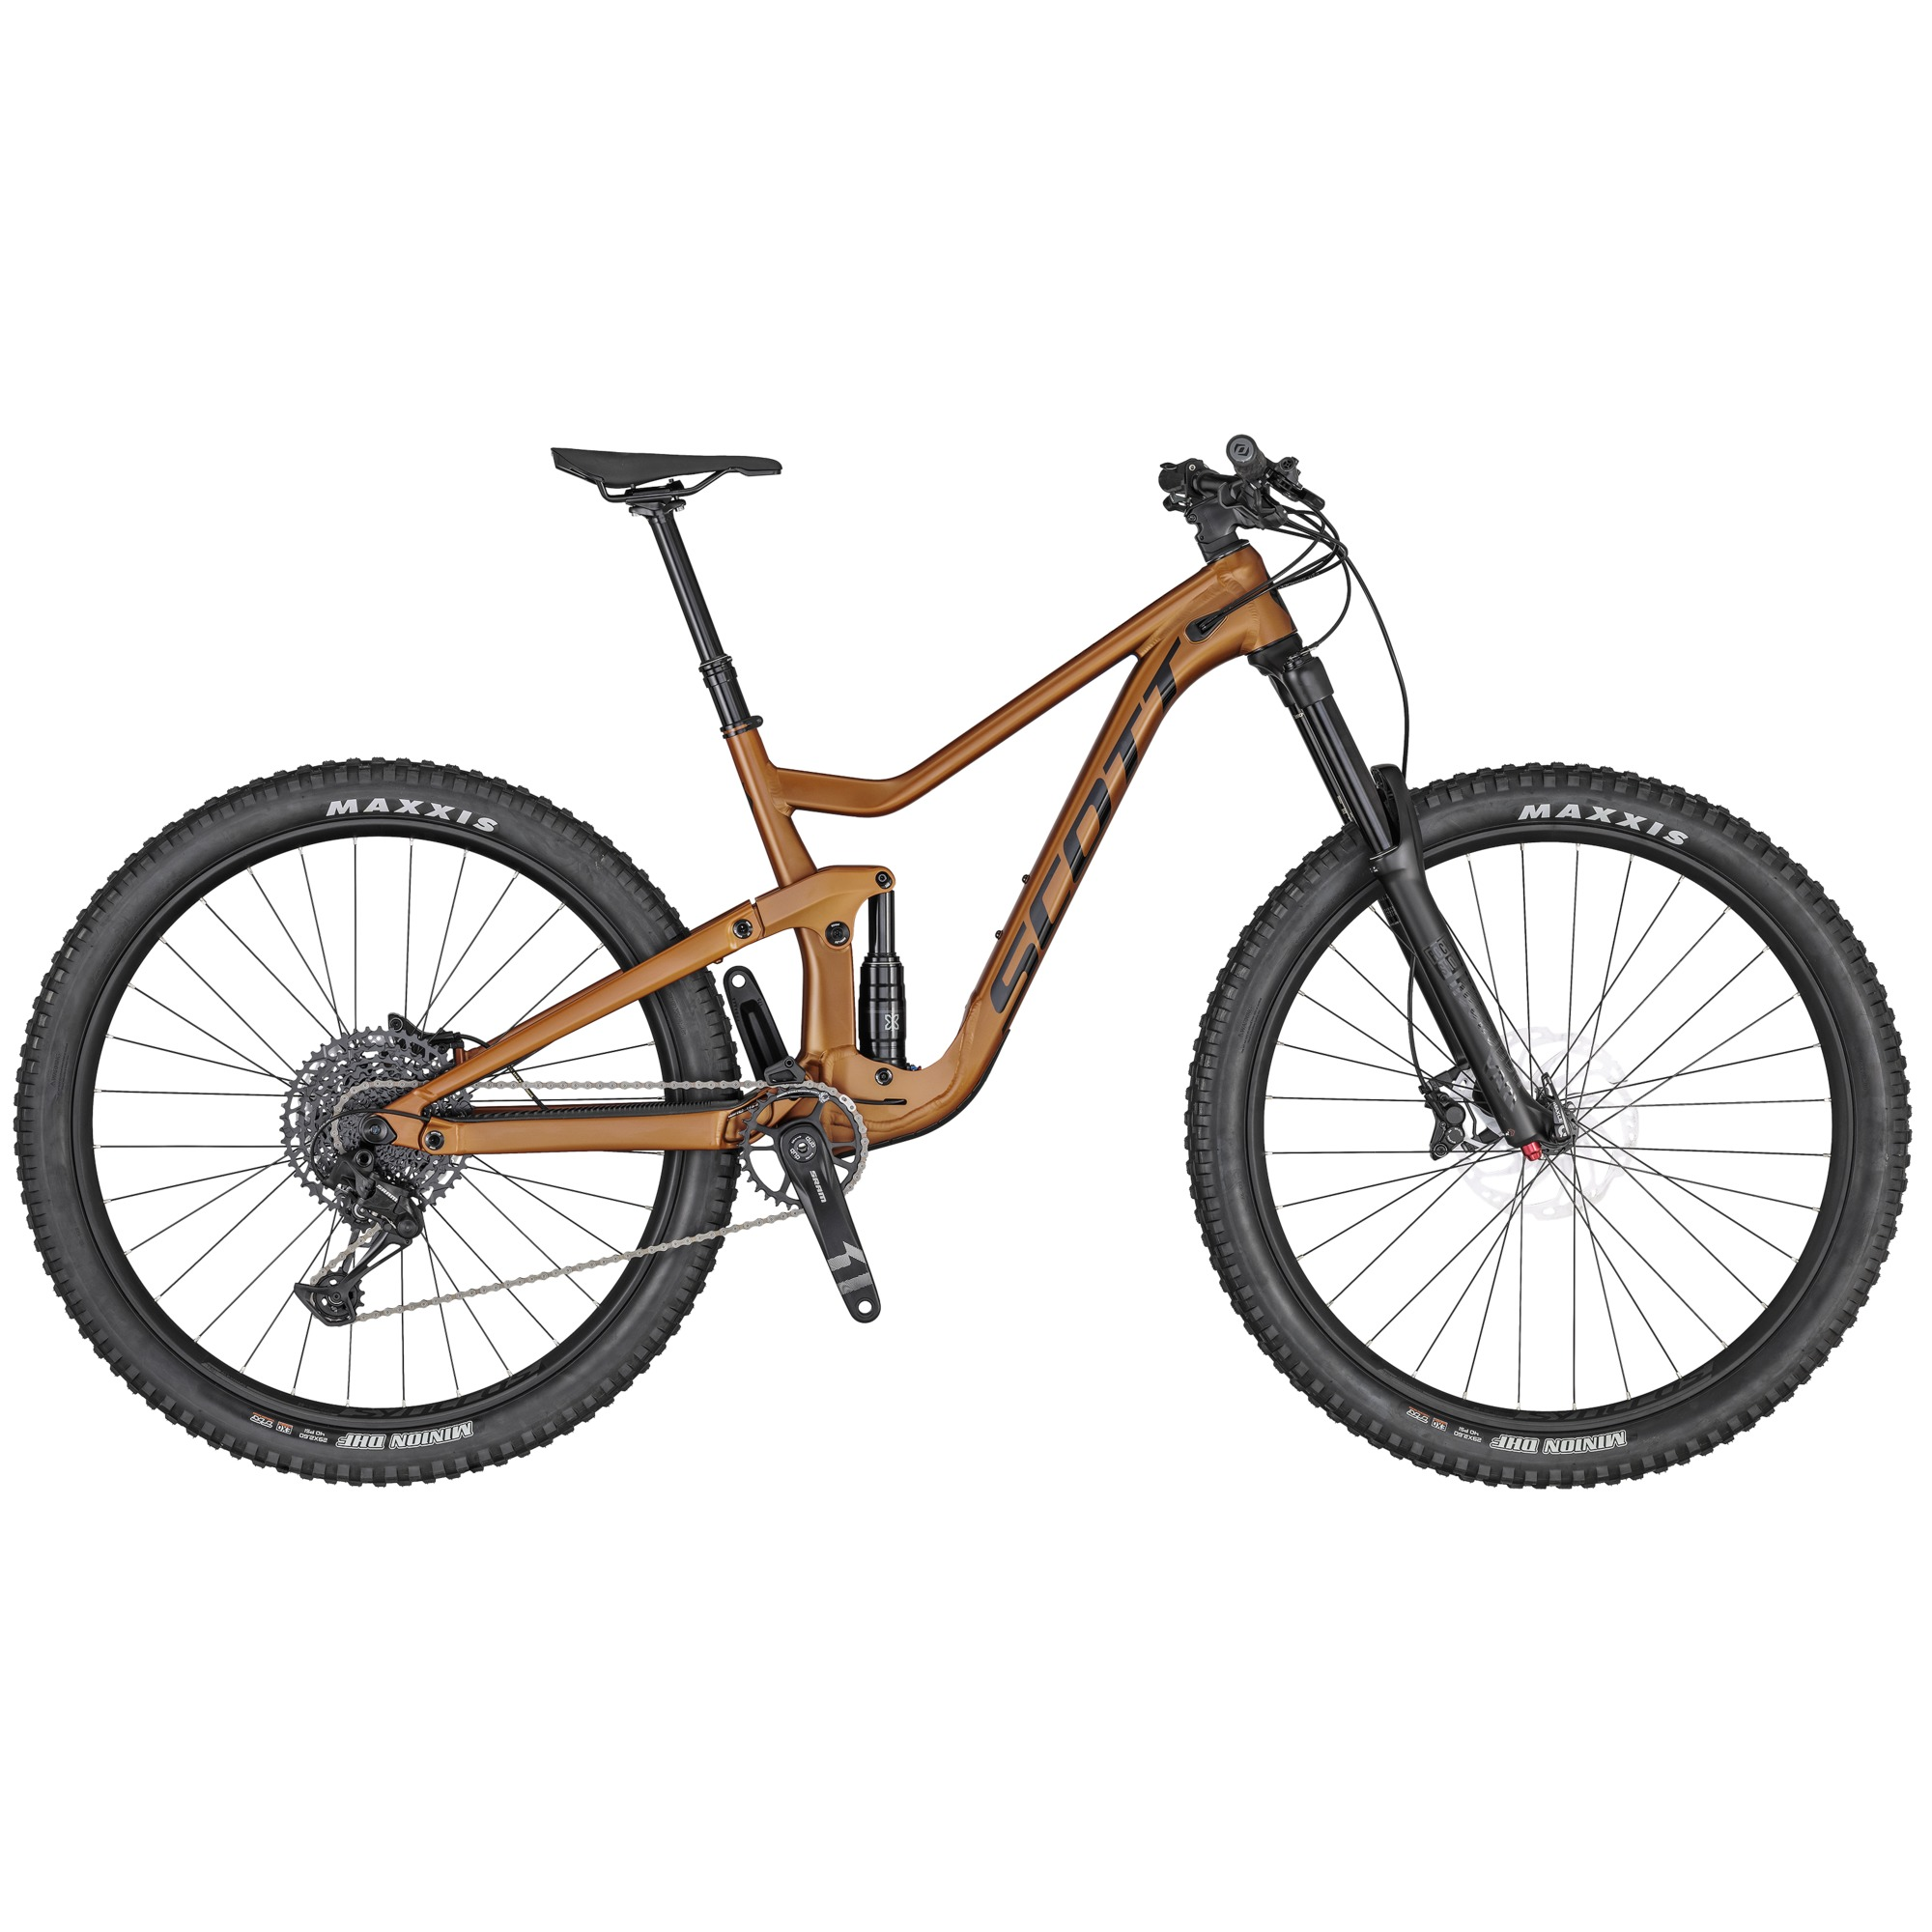 2020 Scott Ransom 930 Full Suspension Mountain Bike in Brown | Mountainbikes